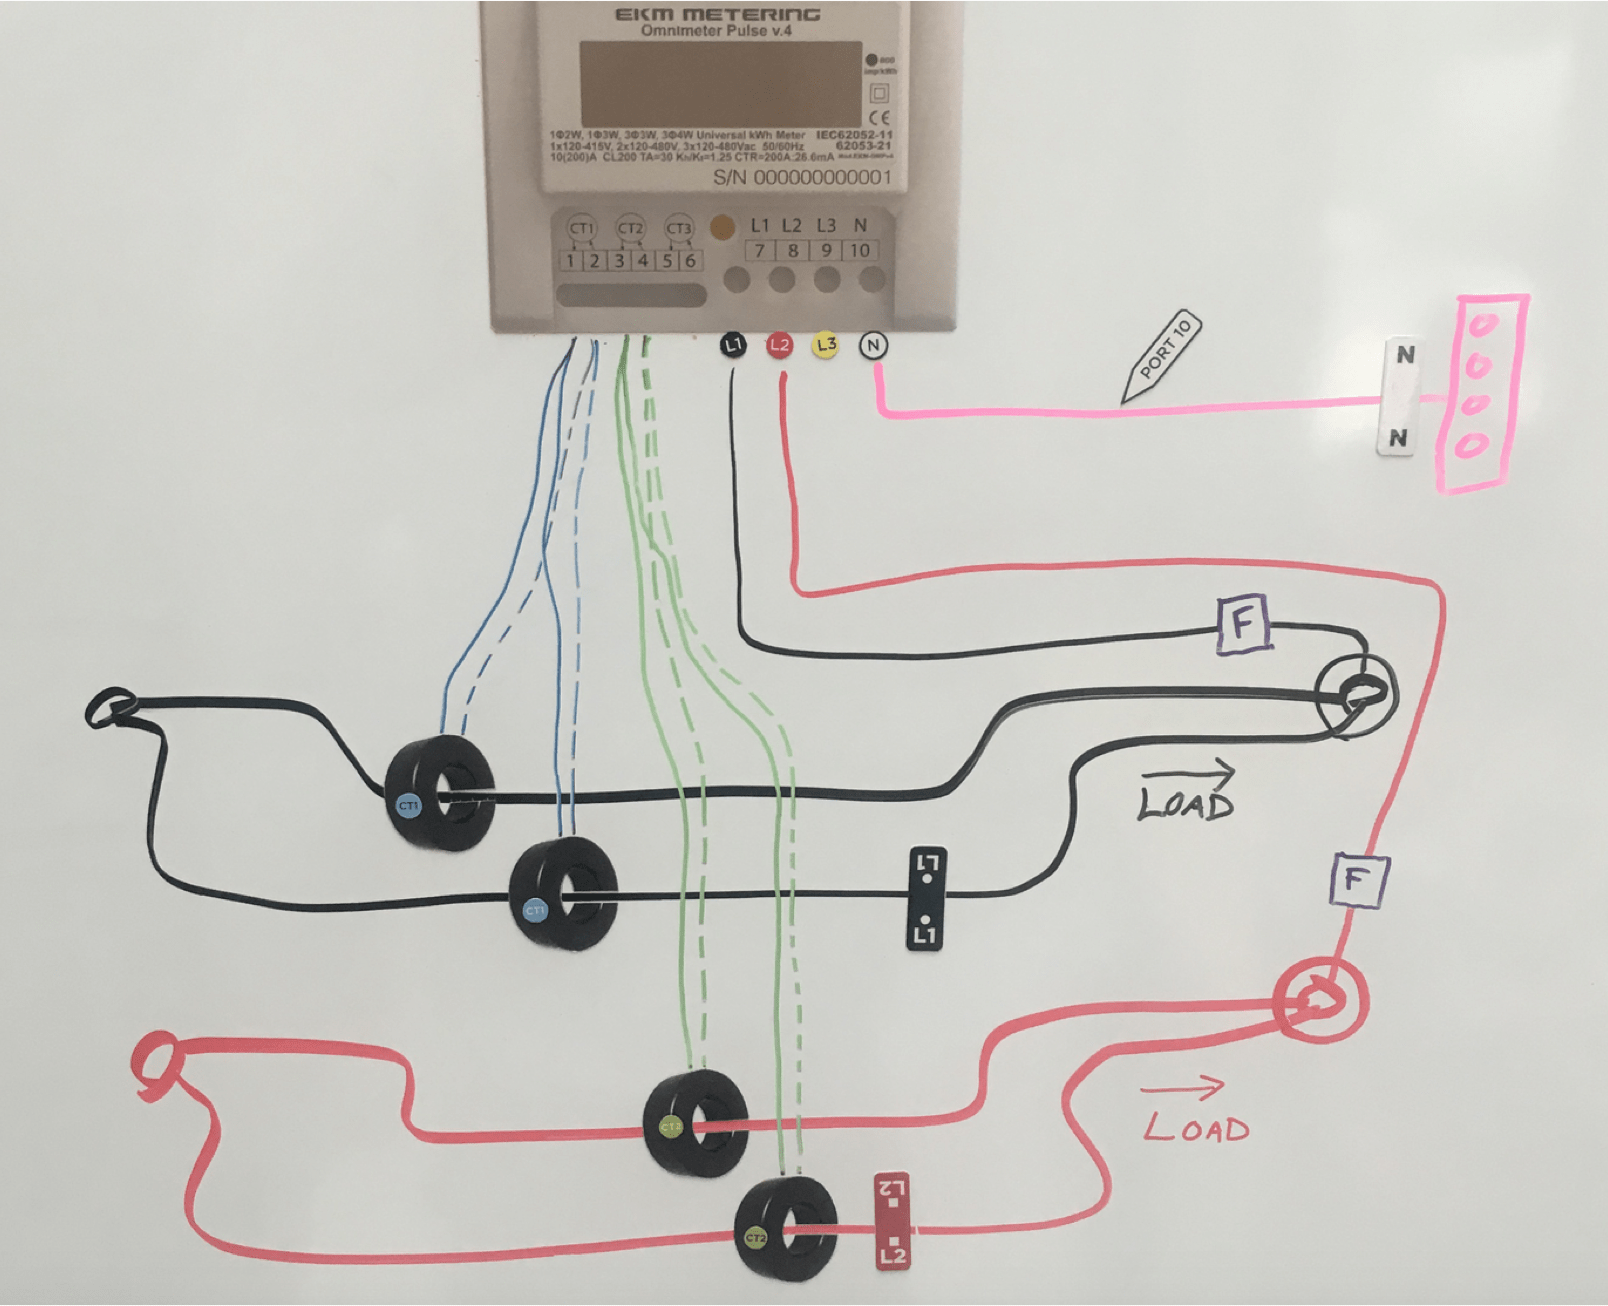 medium resolution of you can also pass multiple wires through a single ct as long as all of the wires are on the same phase here is an explanation of how to pass multiple